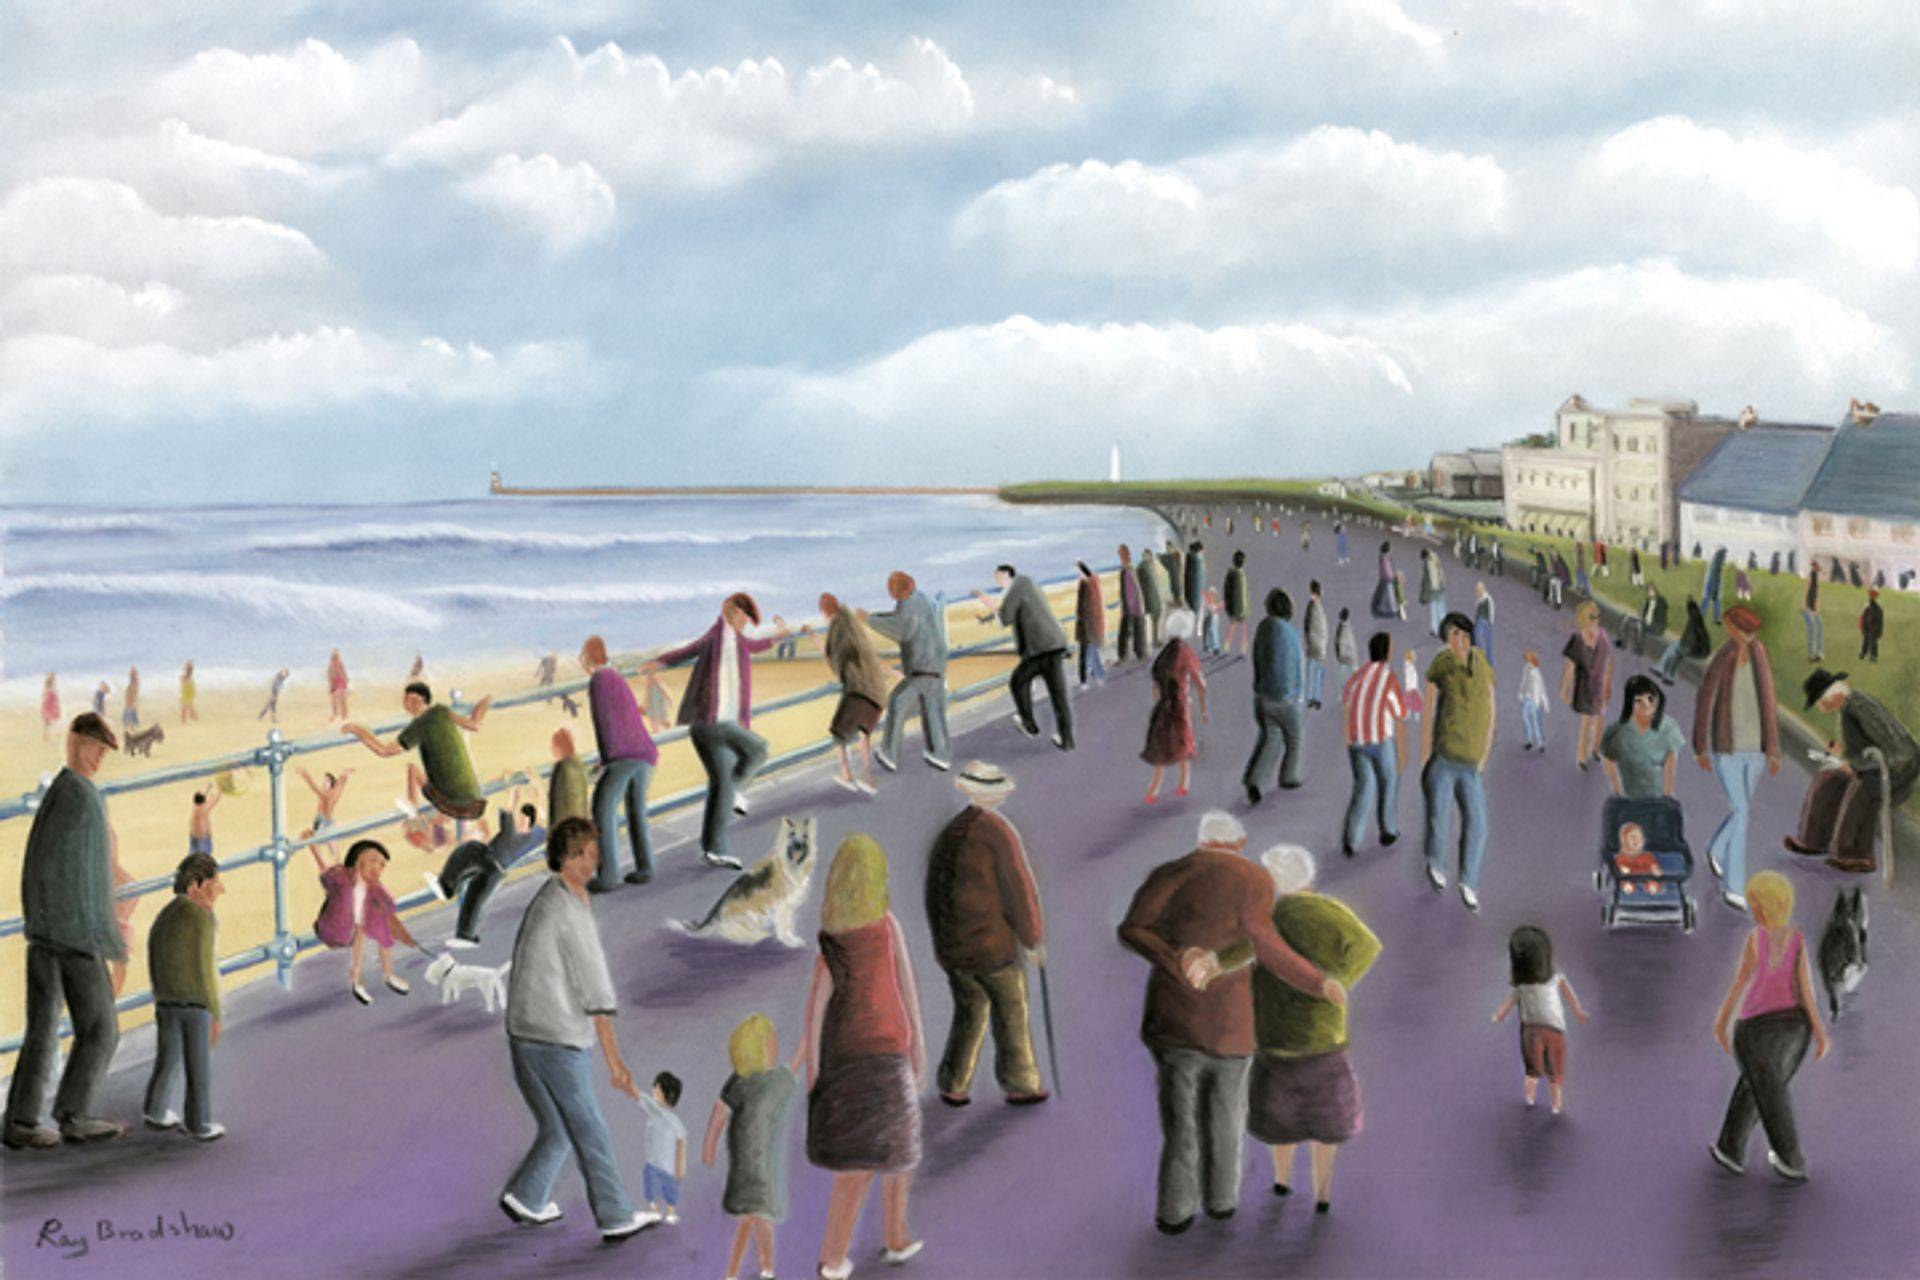 A stroll along the promenade at Sunderland